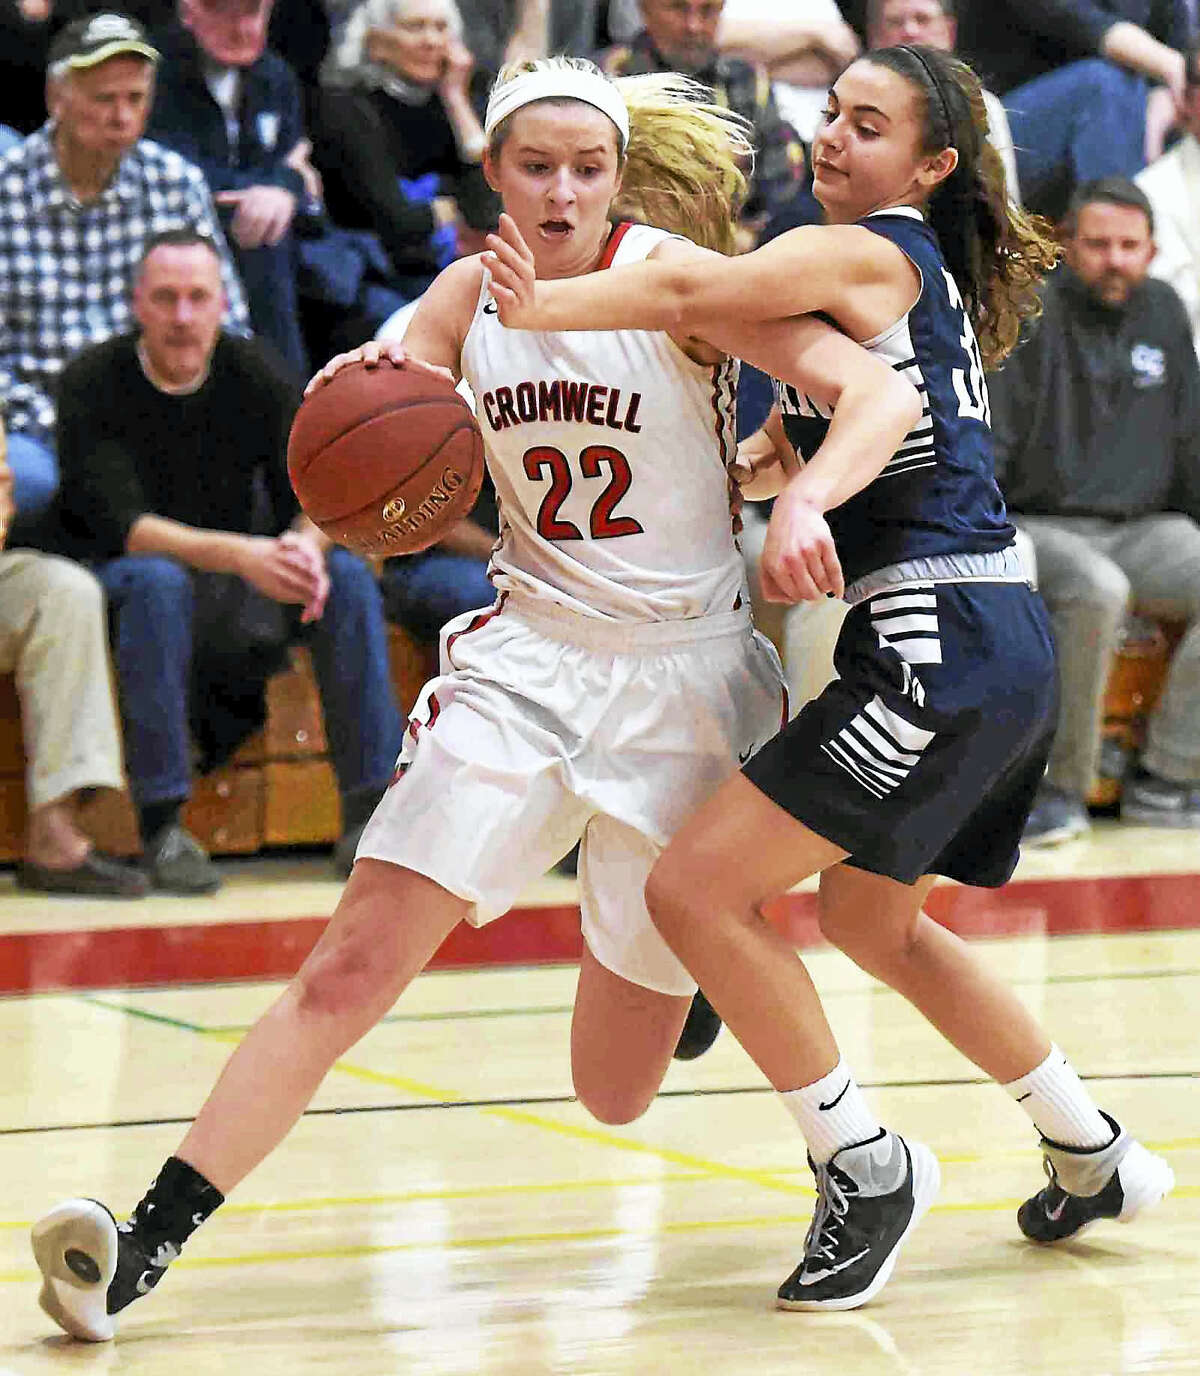 Araya Lessard of Cromwell High School tries to move the ball down court Monday against Brianna Navarra of Morgan during the second quarter of the CIAC Class M Girls basketball quarterfinal in Cromwell.